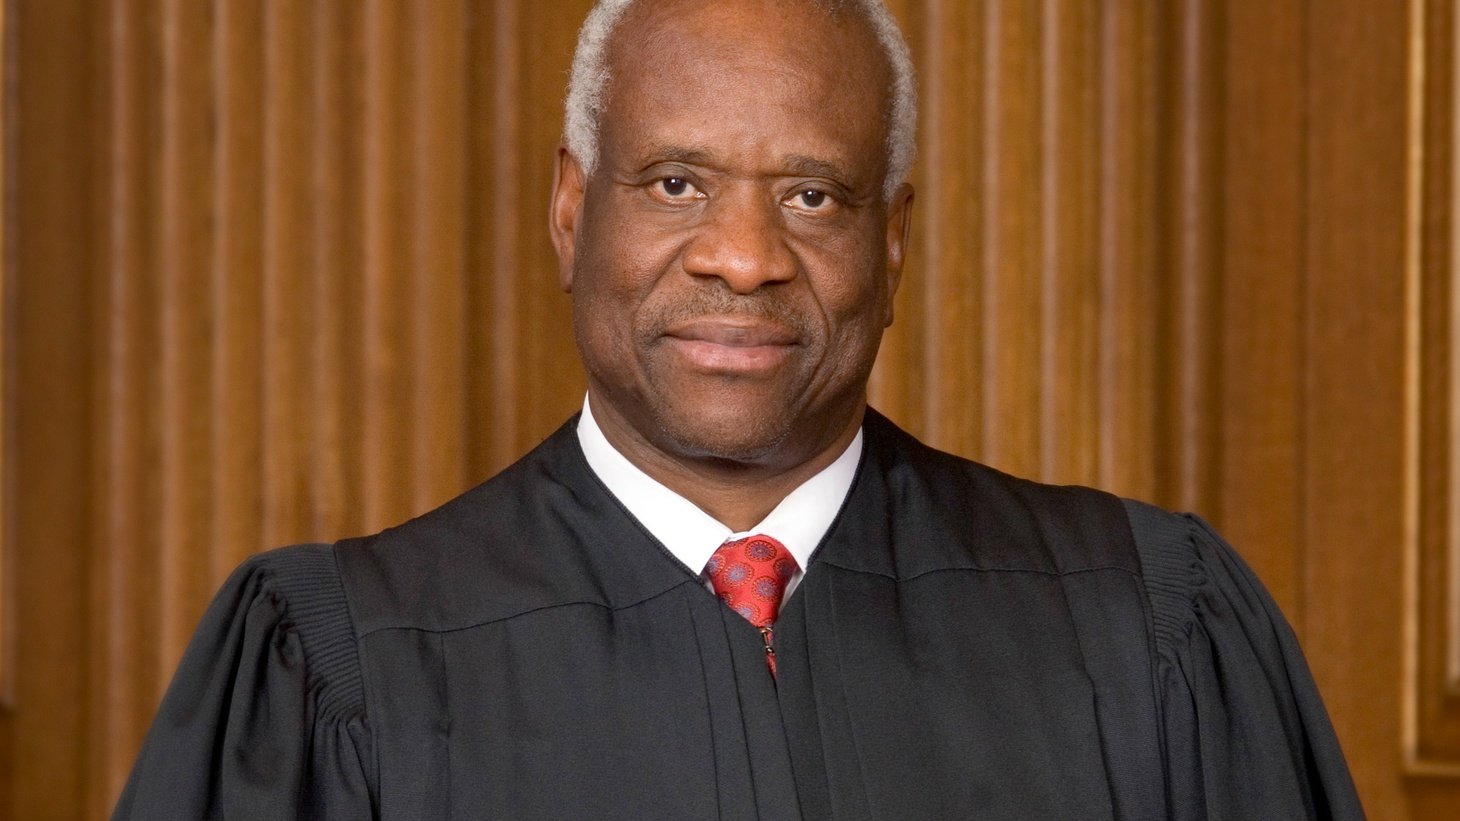 This year marks an unusual anniversary on the US Supreme Court.